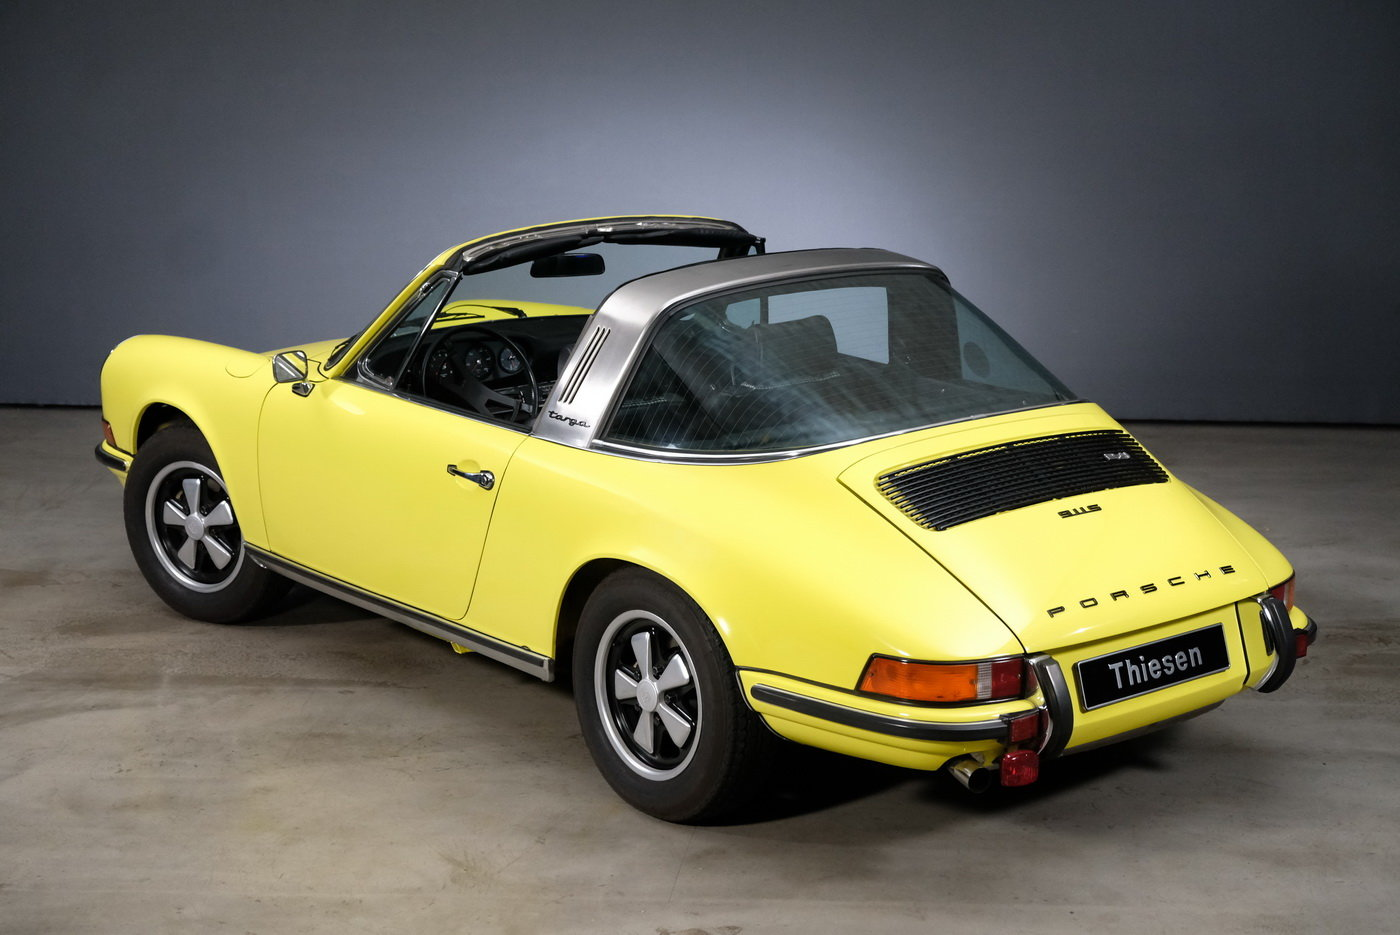 1972 Porsche 911 S 2.4 ltr. Targa For Sale (picture 3 of 6)